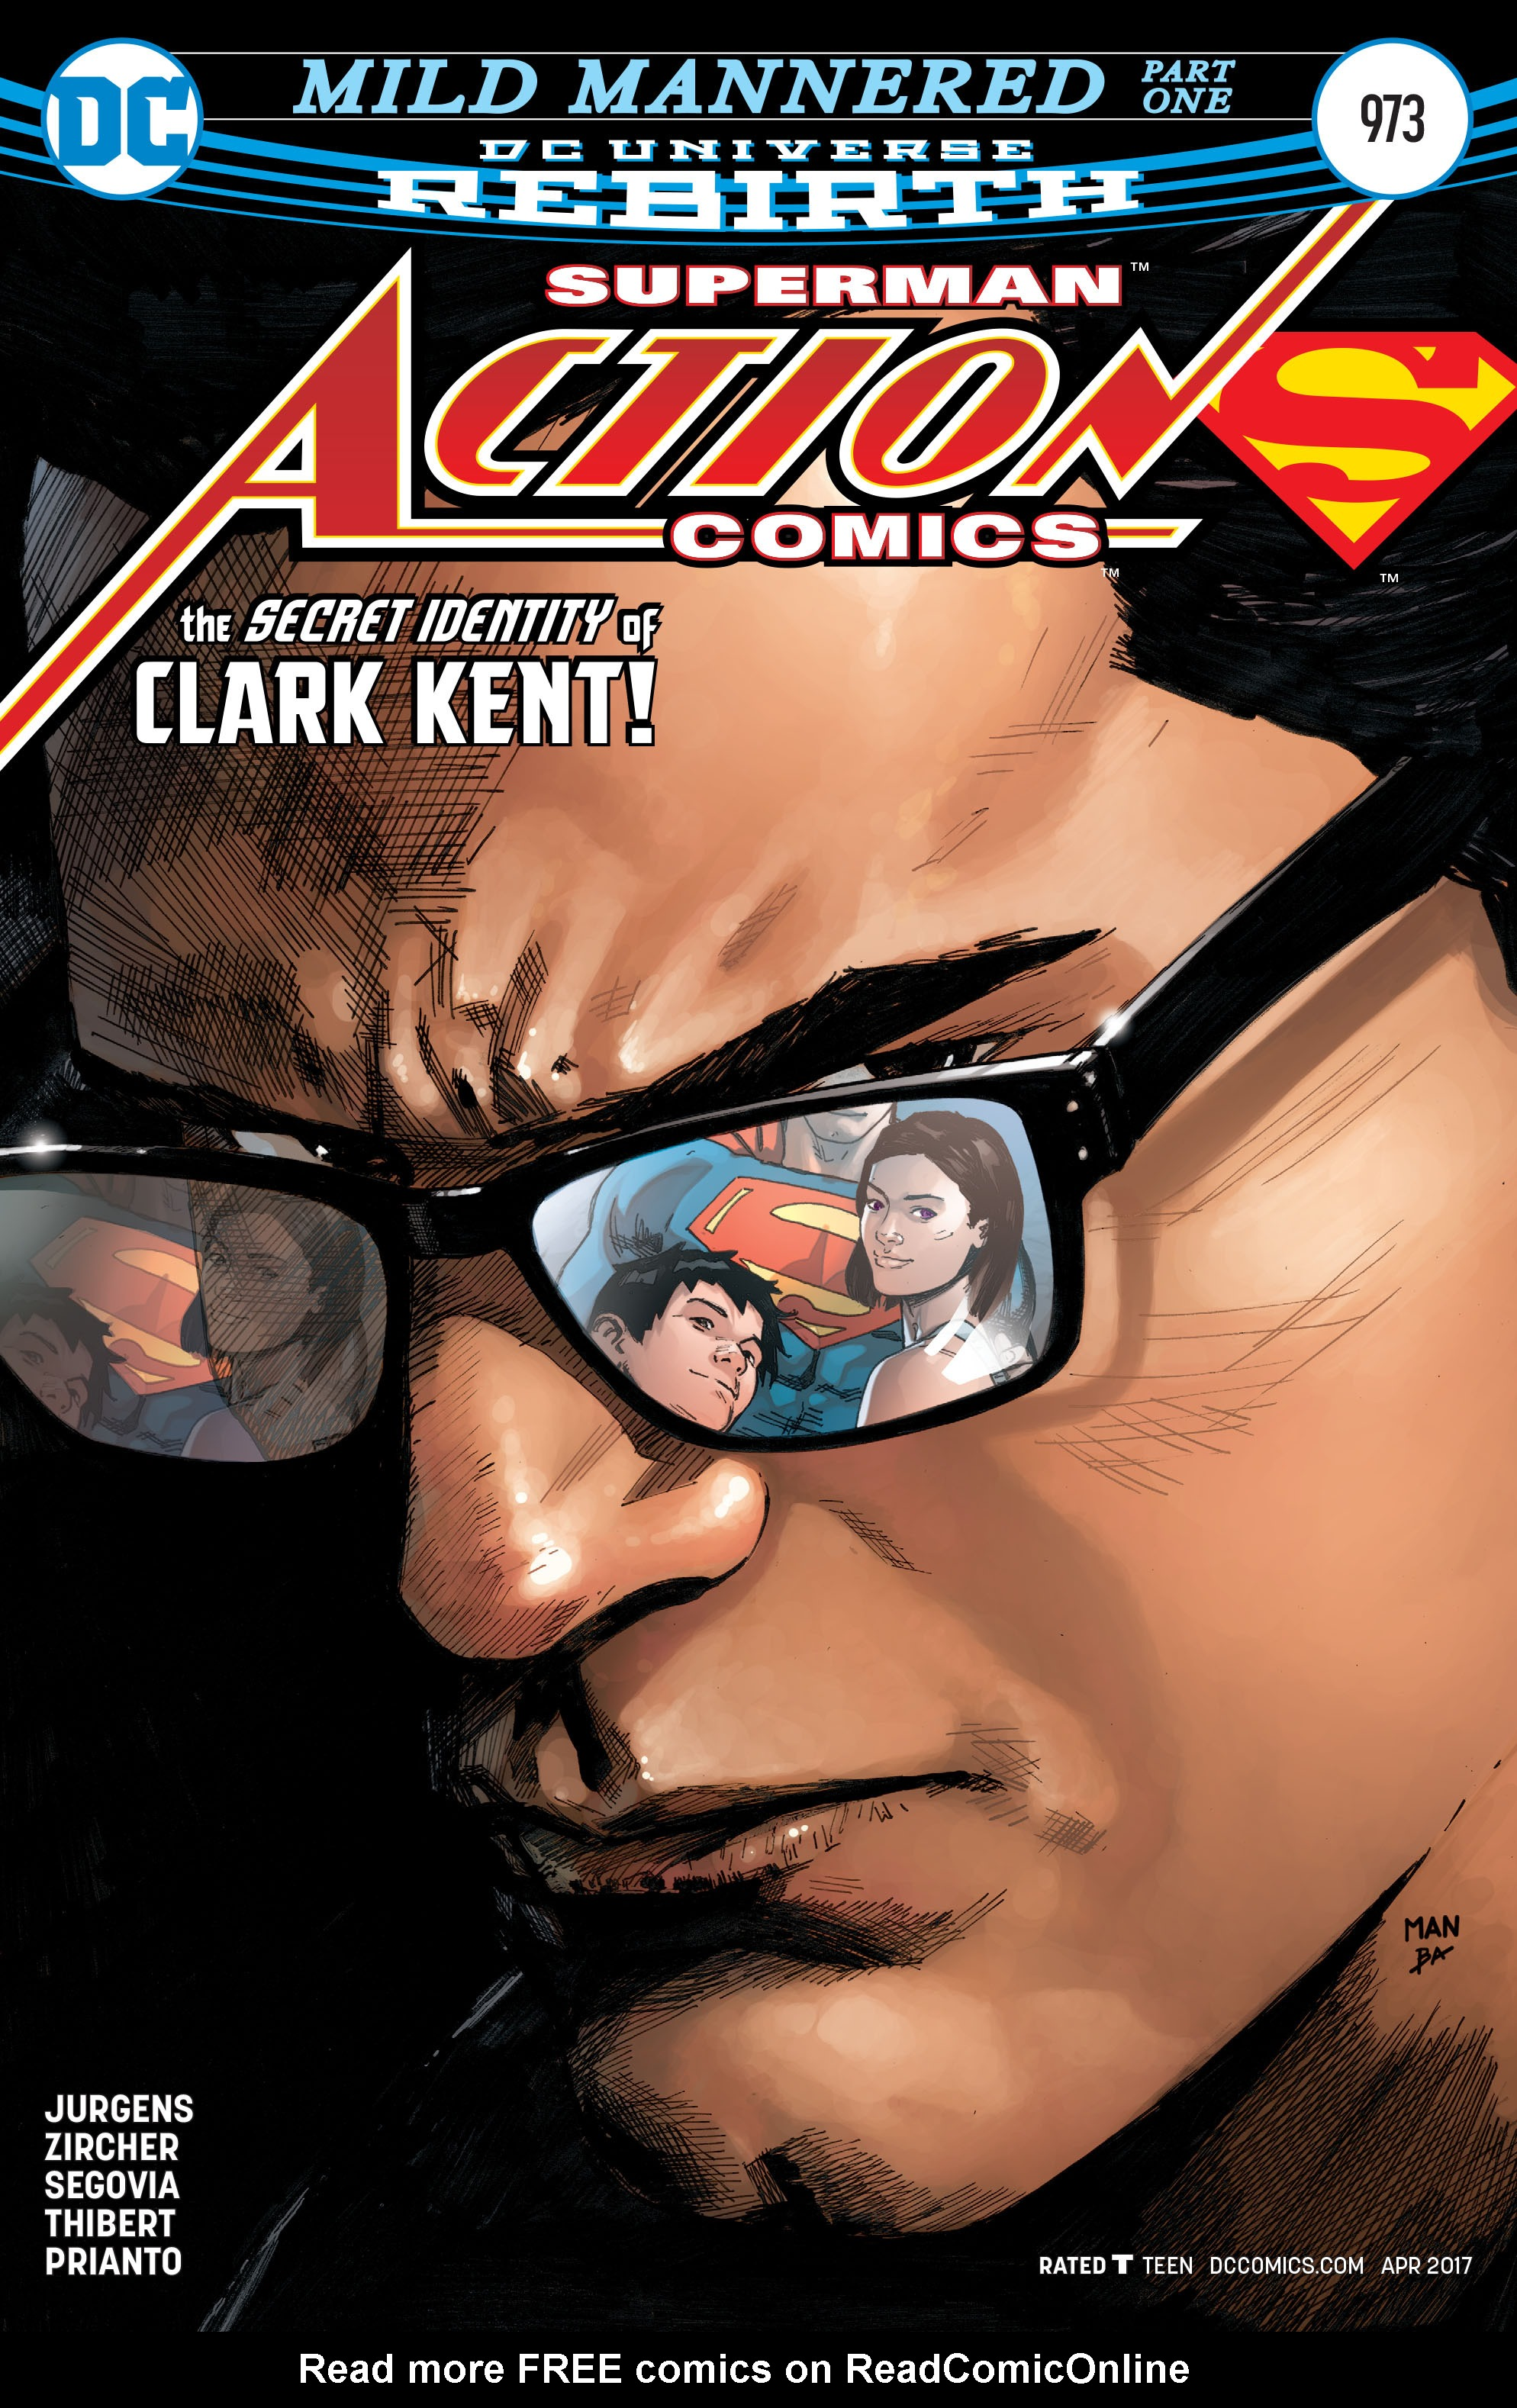 Read online Action Comics (2016) comic -  Issue #973 - 1